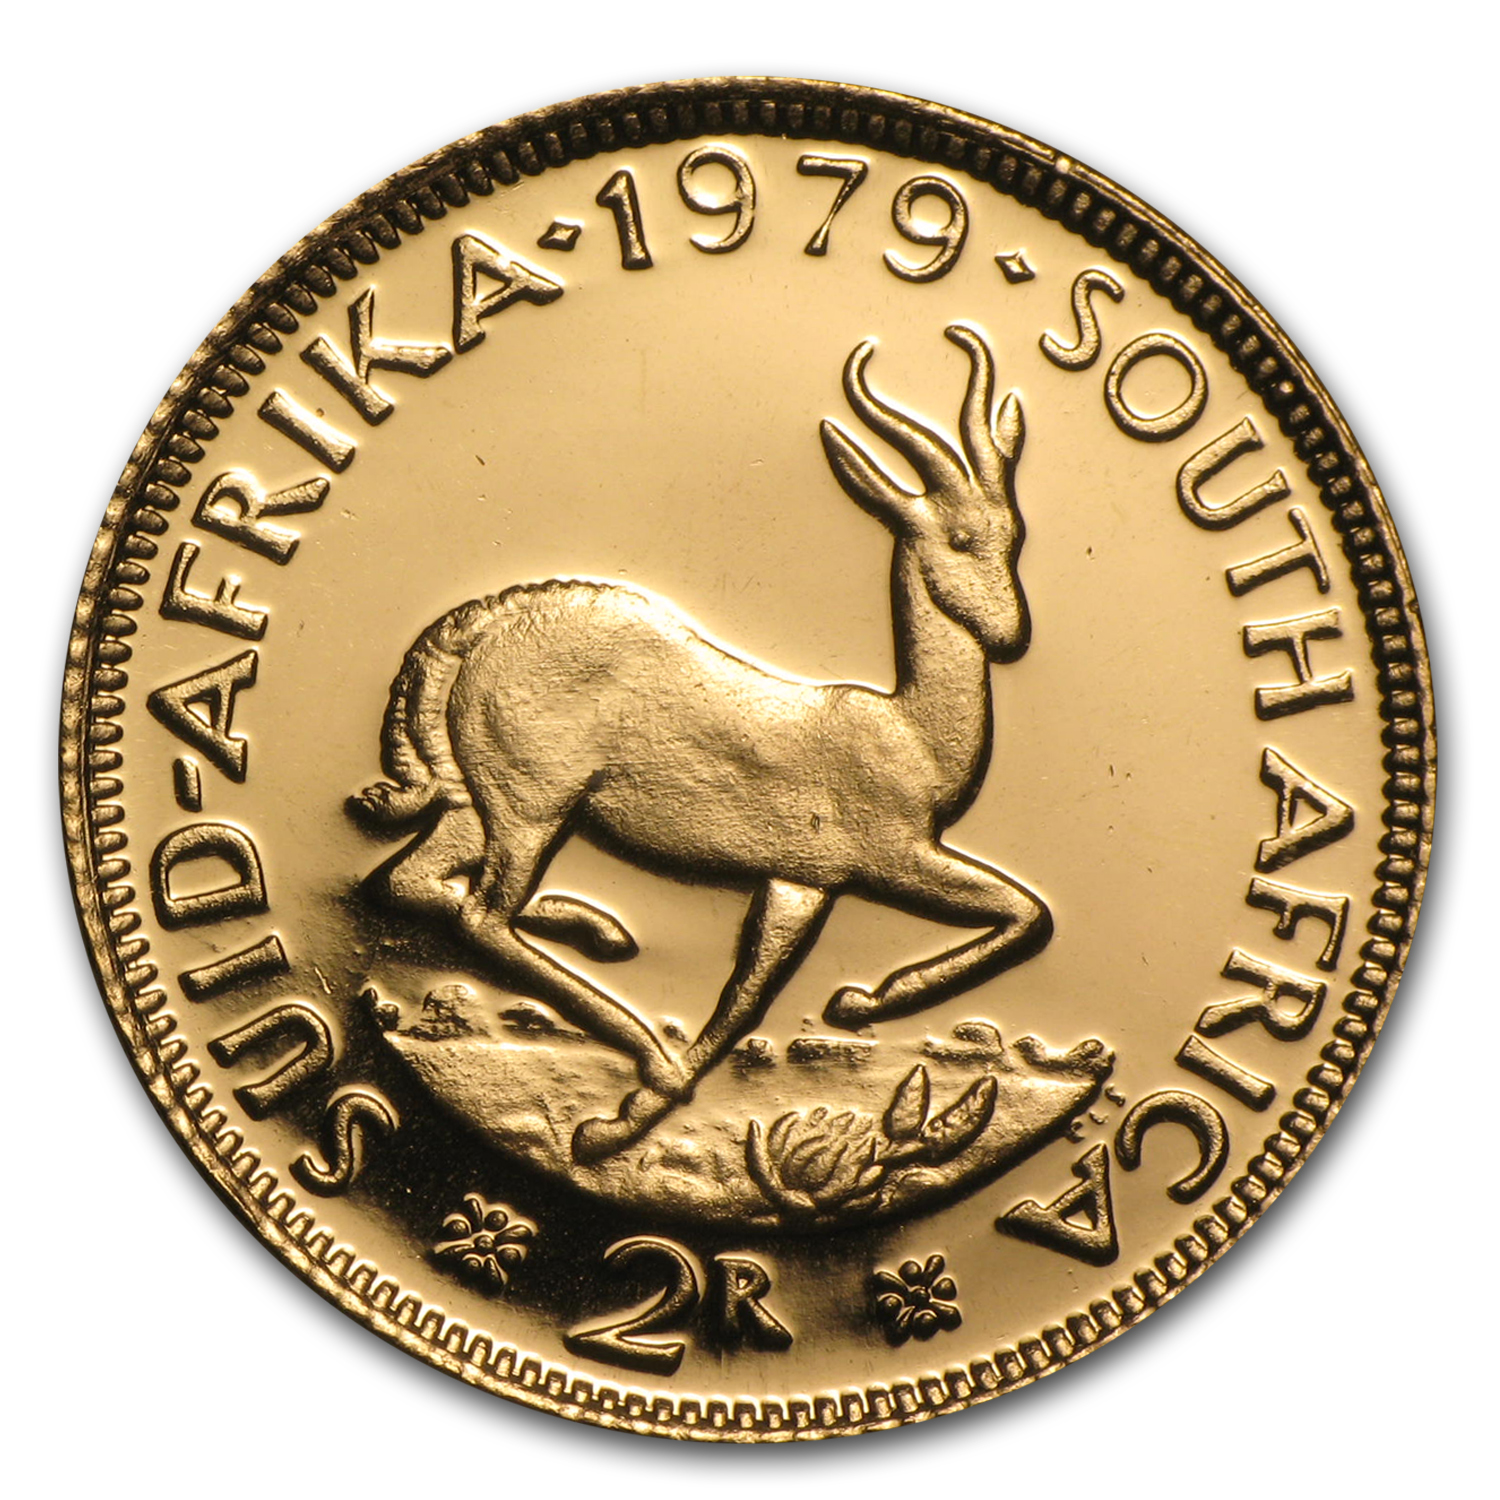 South Africa Proof Gold 2 Rand